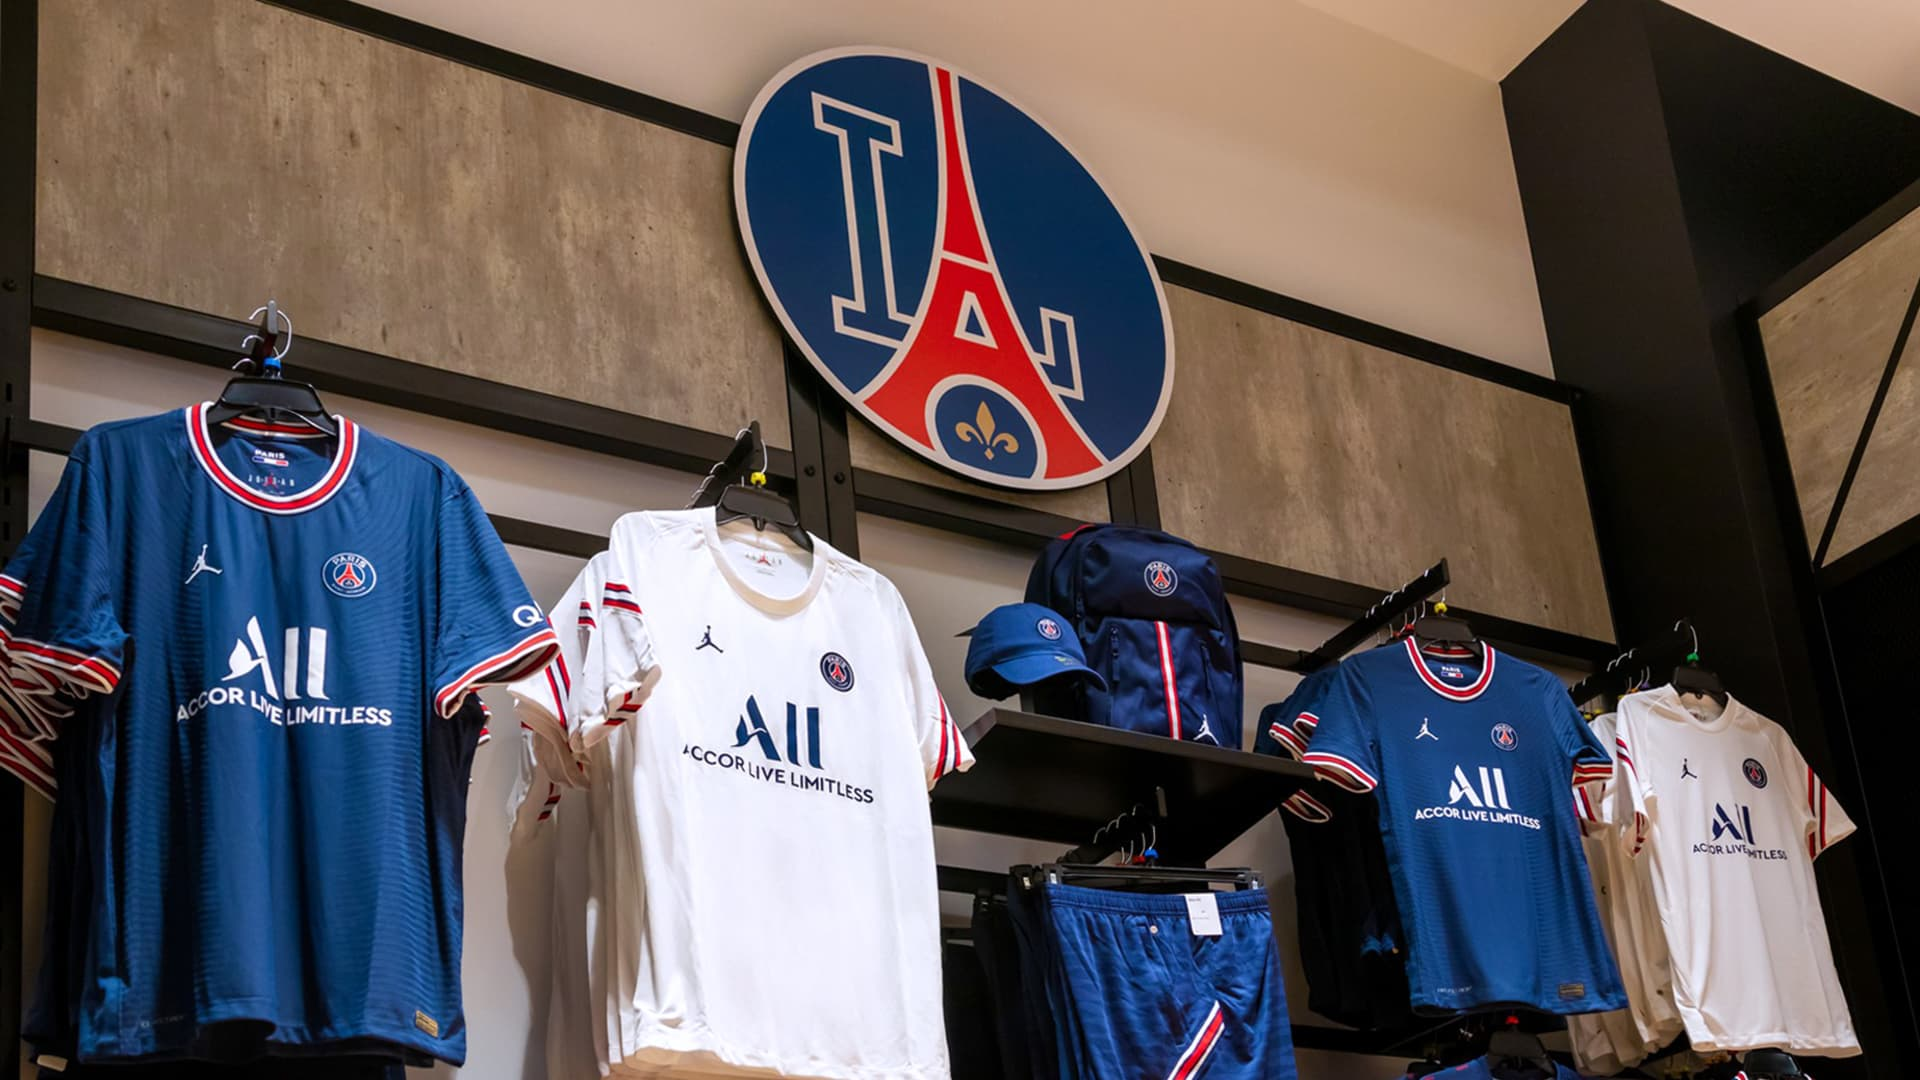 Paris Saint-Germain Football Club store which Fanatics is opening in Los Angeles.